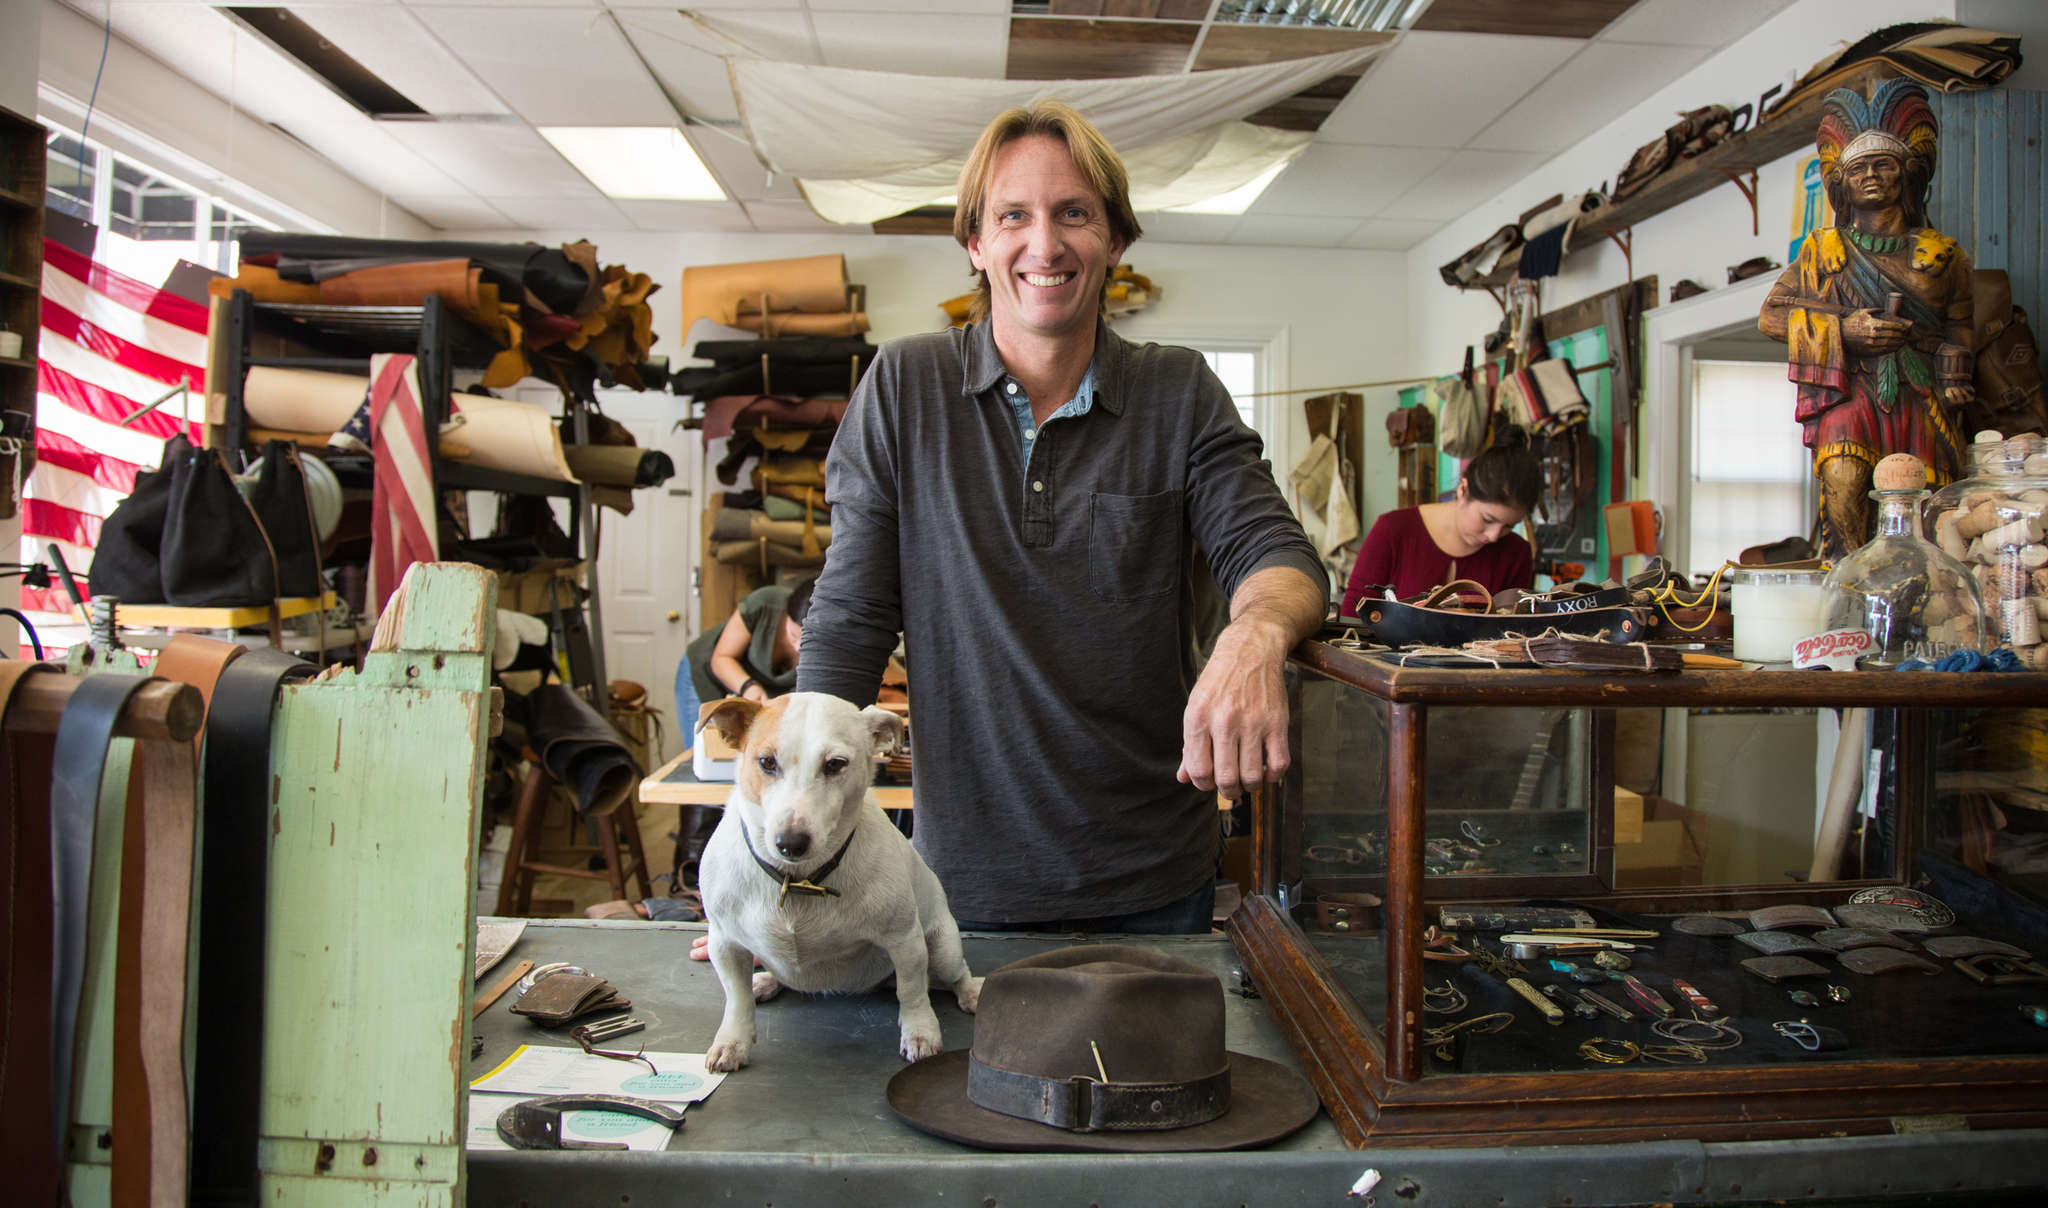 Mike Balitsaris has long had passions for working with leather and for putting old things to new uses. His company, Waltzing Matilda, combines the two.